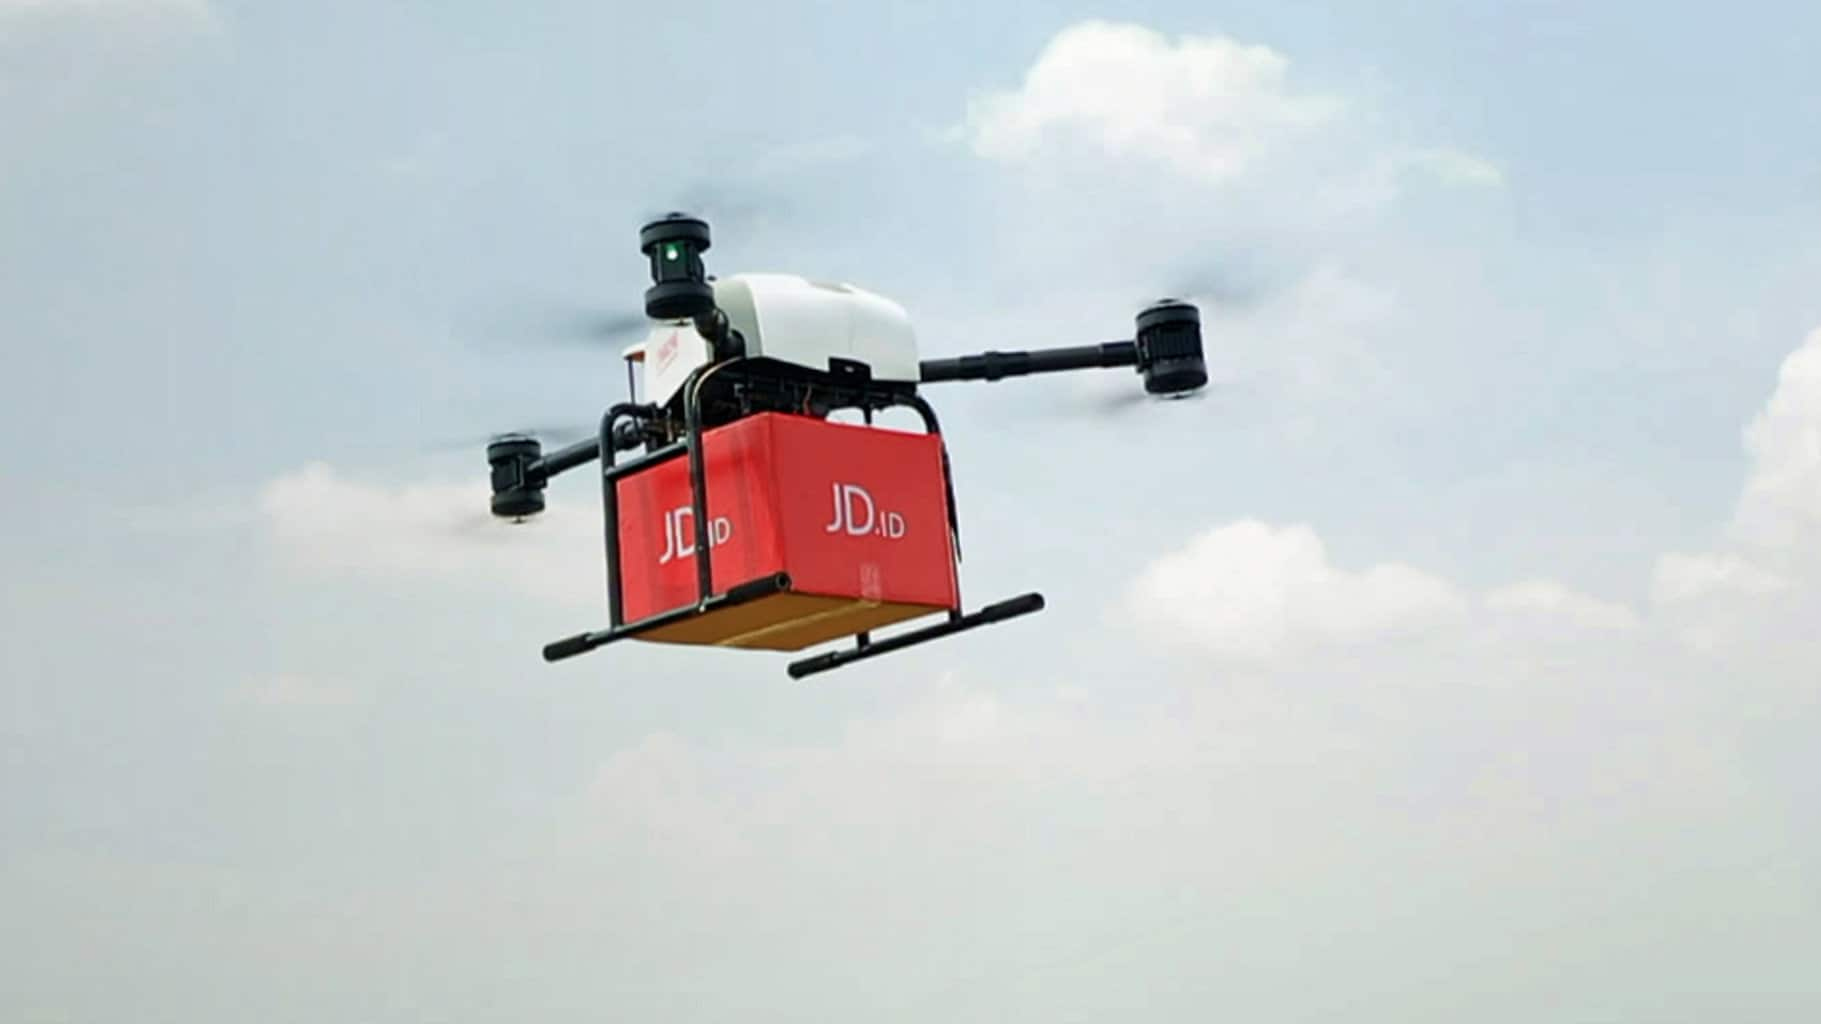 JD.com delivers books using drones in Indonesia during pilot run -  FreightWaves